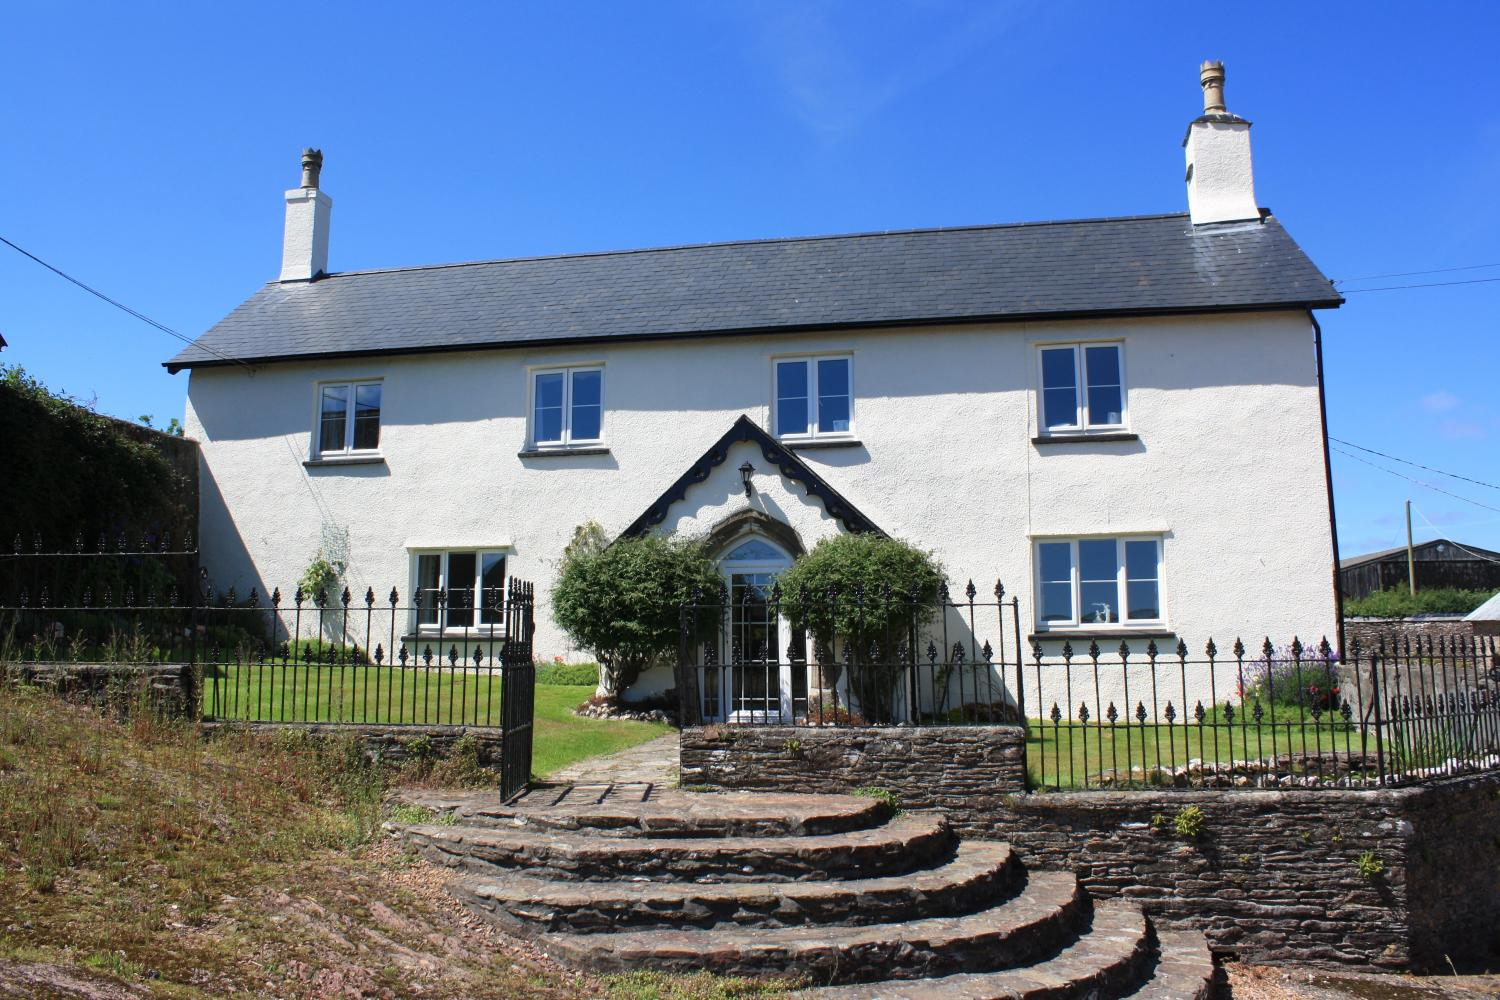 Upcott Farm House Winsford Holiday Cottages In Winsford